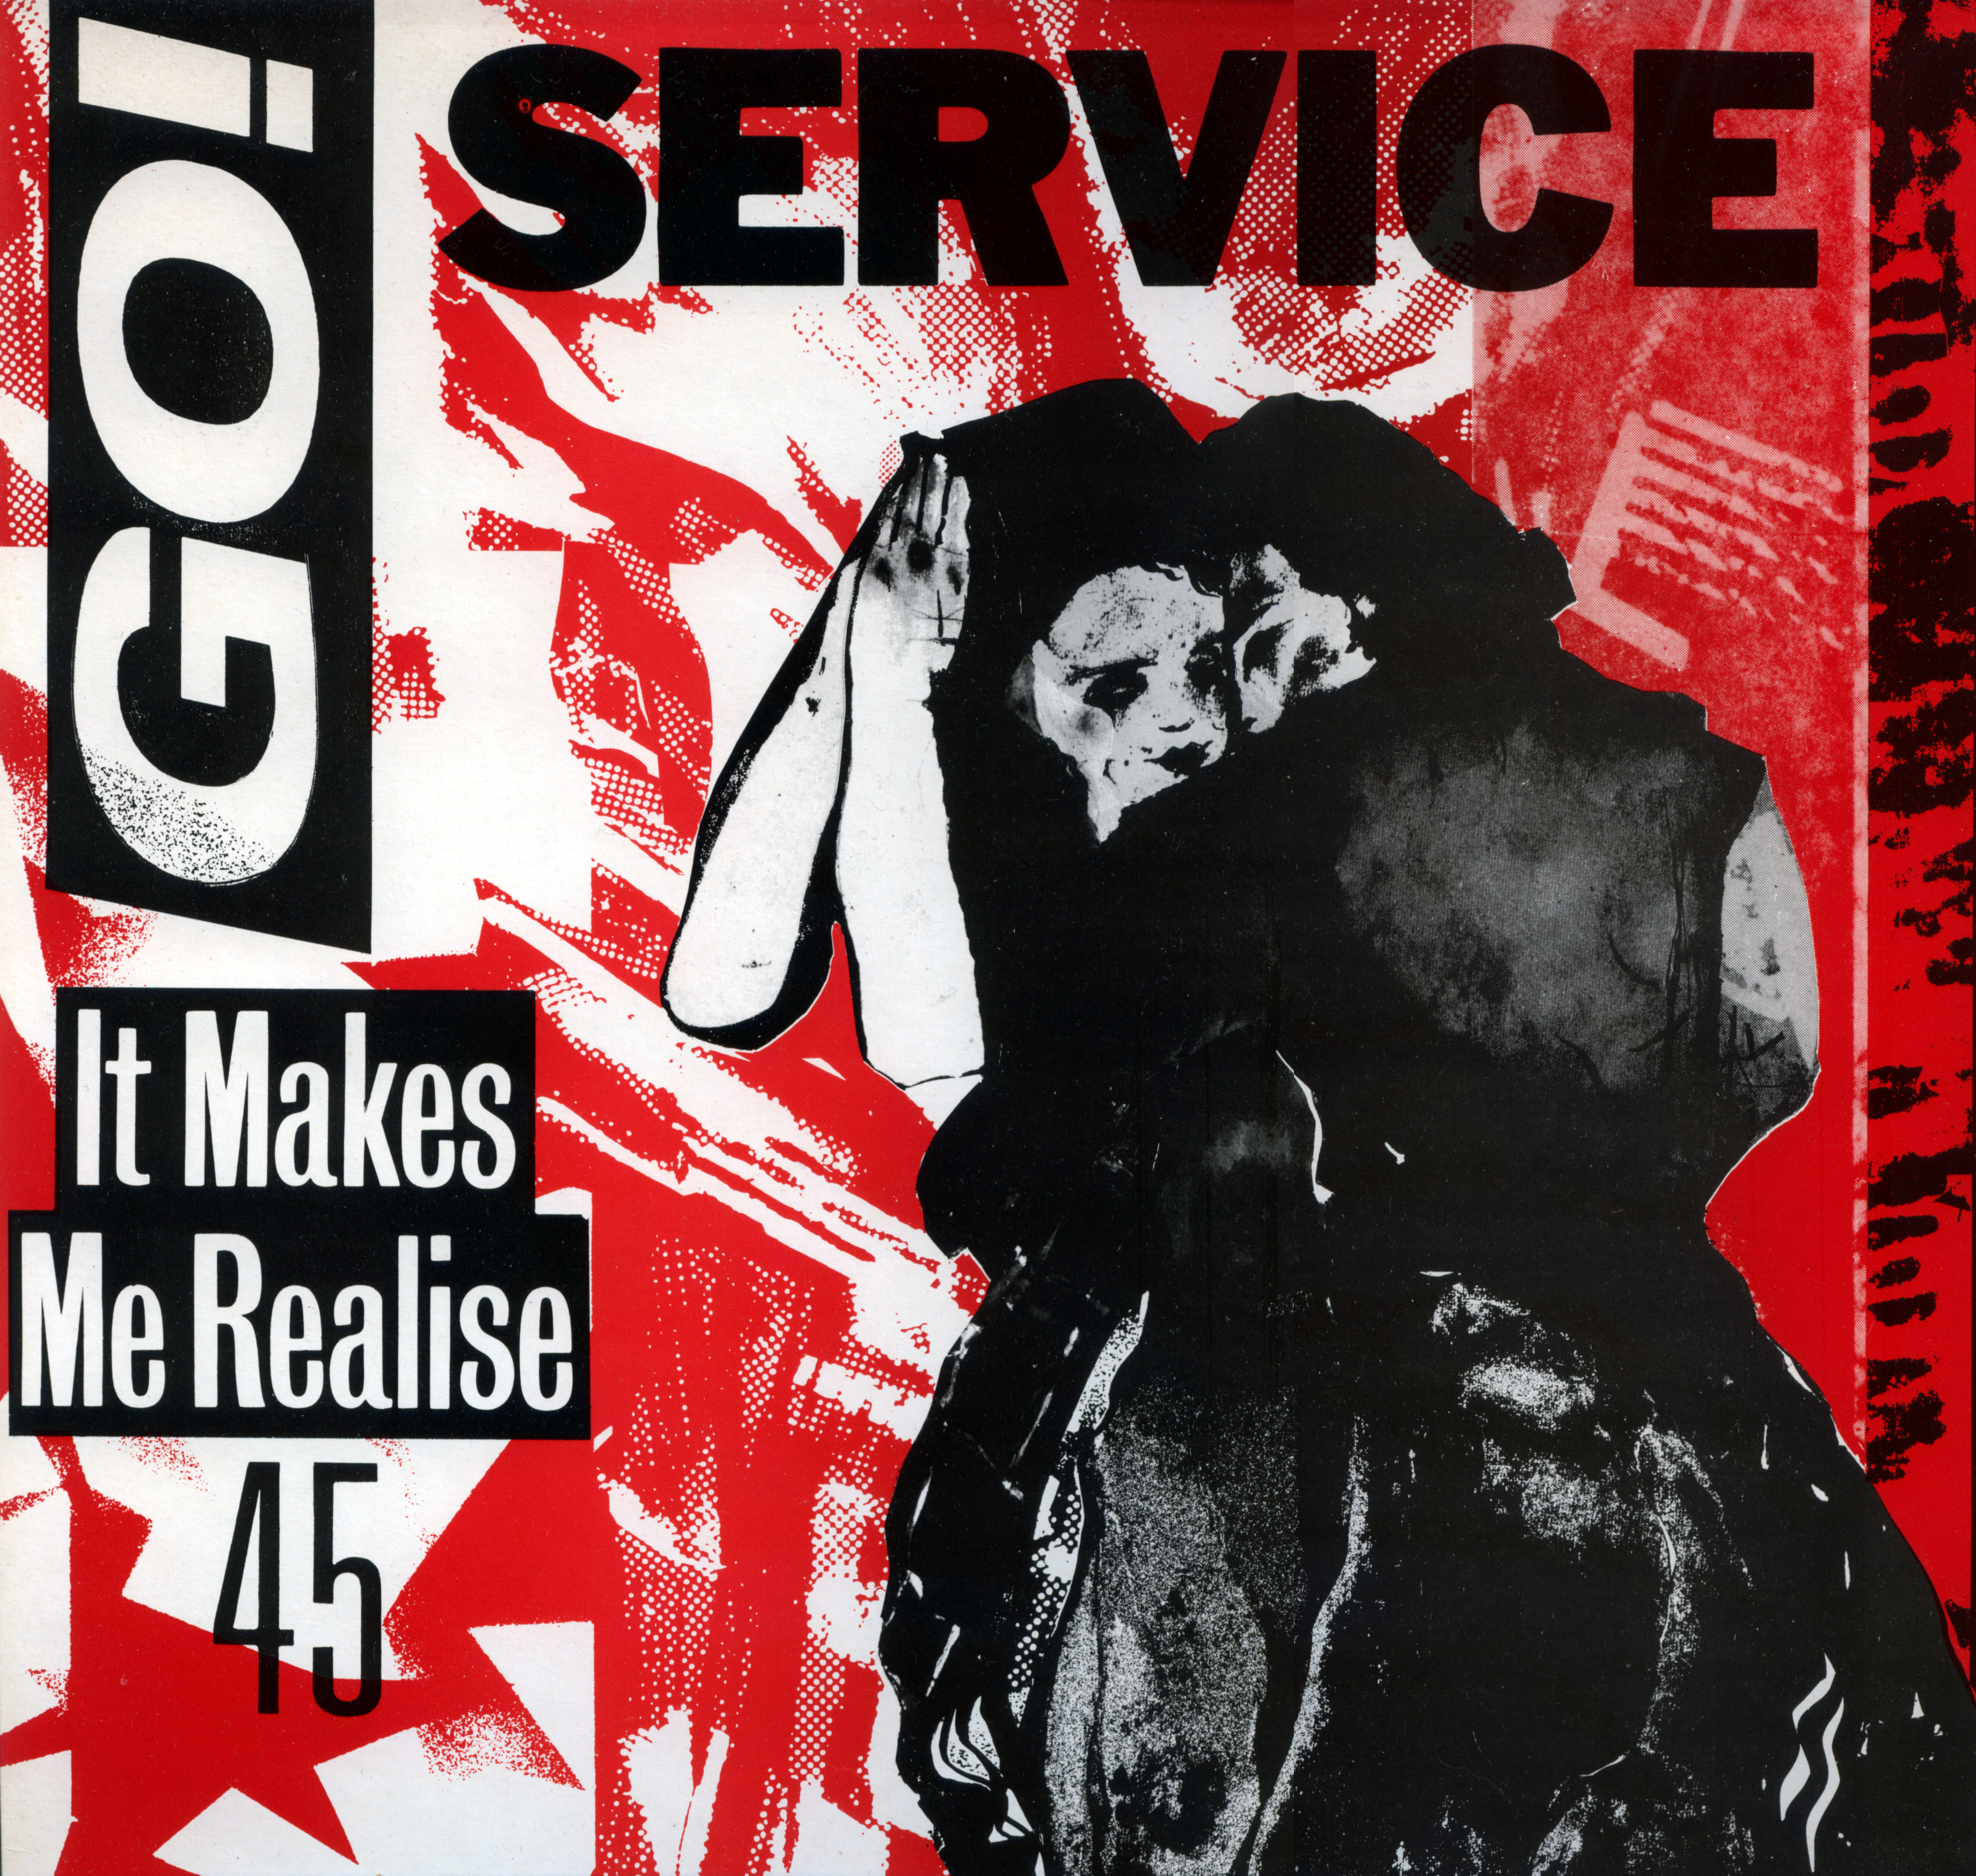 go service front